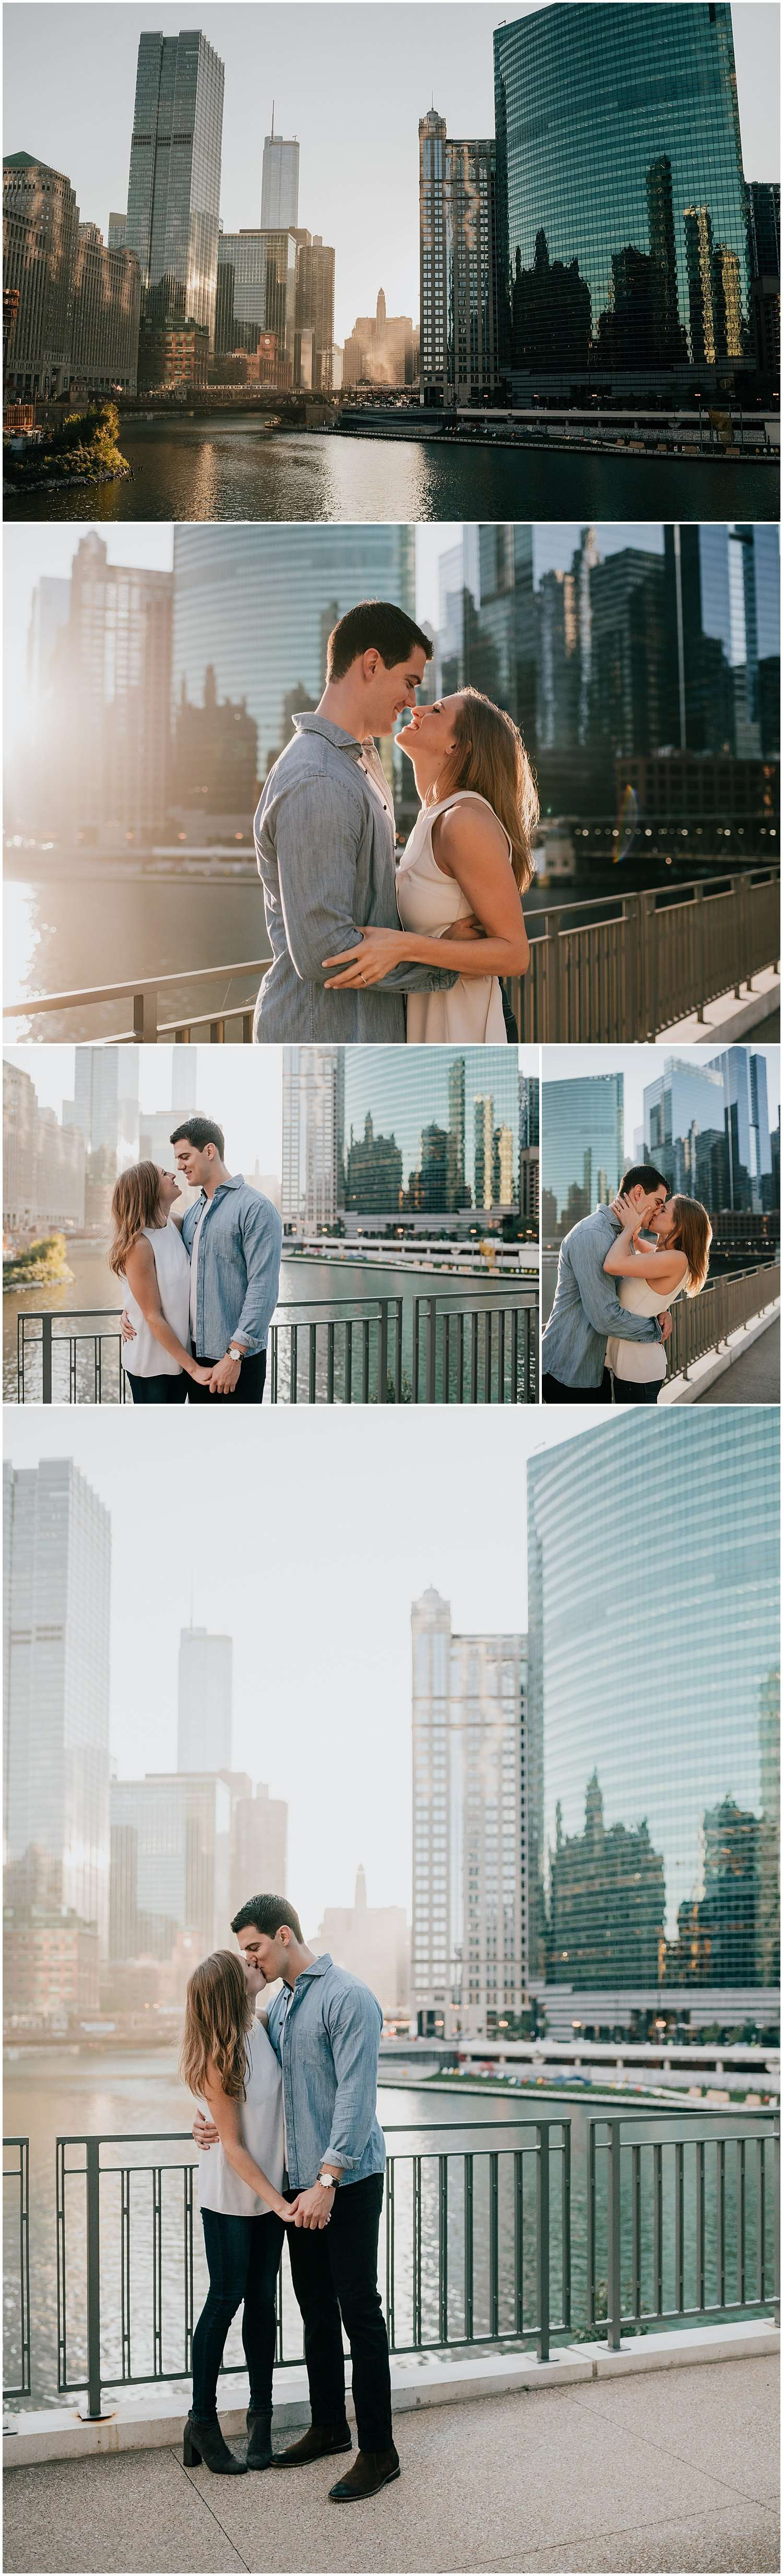 chicago, downtown chicago sunrise, sunrise, downtown chicago, golden hour, morning, street, urban, riverwalk, rooftop, kinzie street bridge, chicago bridge, wolf point west, engagement session, couple session, couples session, best chicago photographer, best engagement photographer, iron and honey, dog, pet, pet photography, dogs